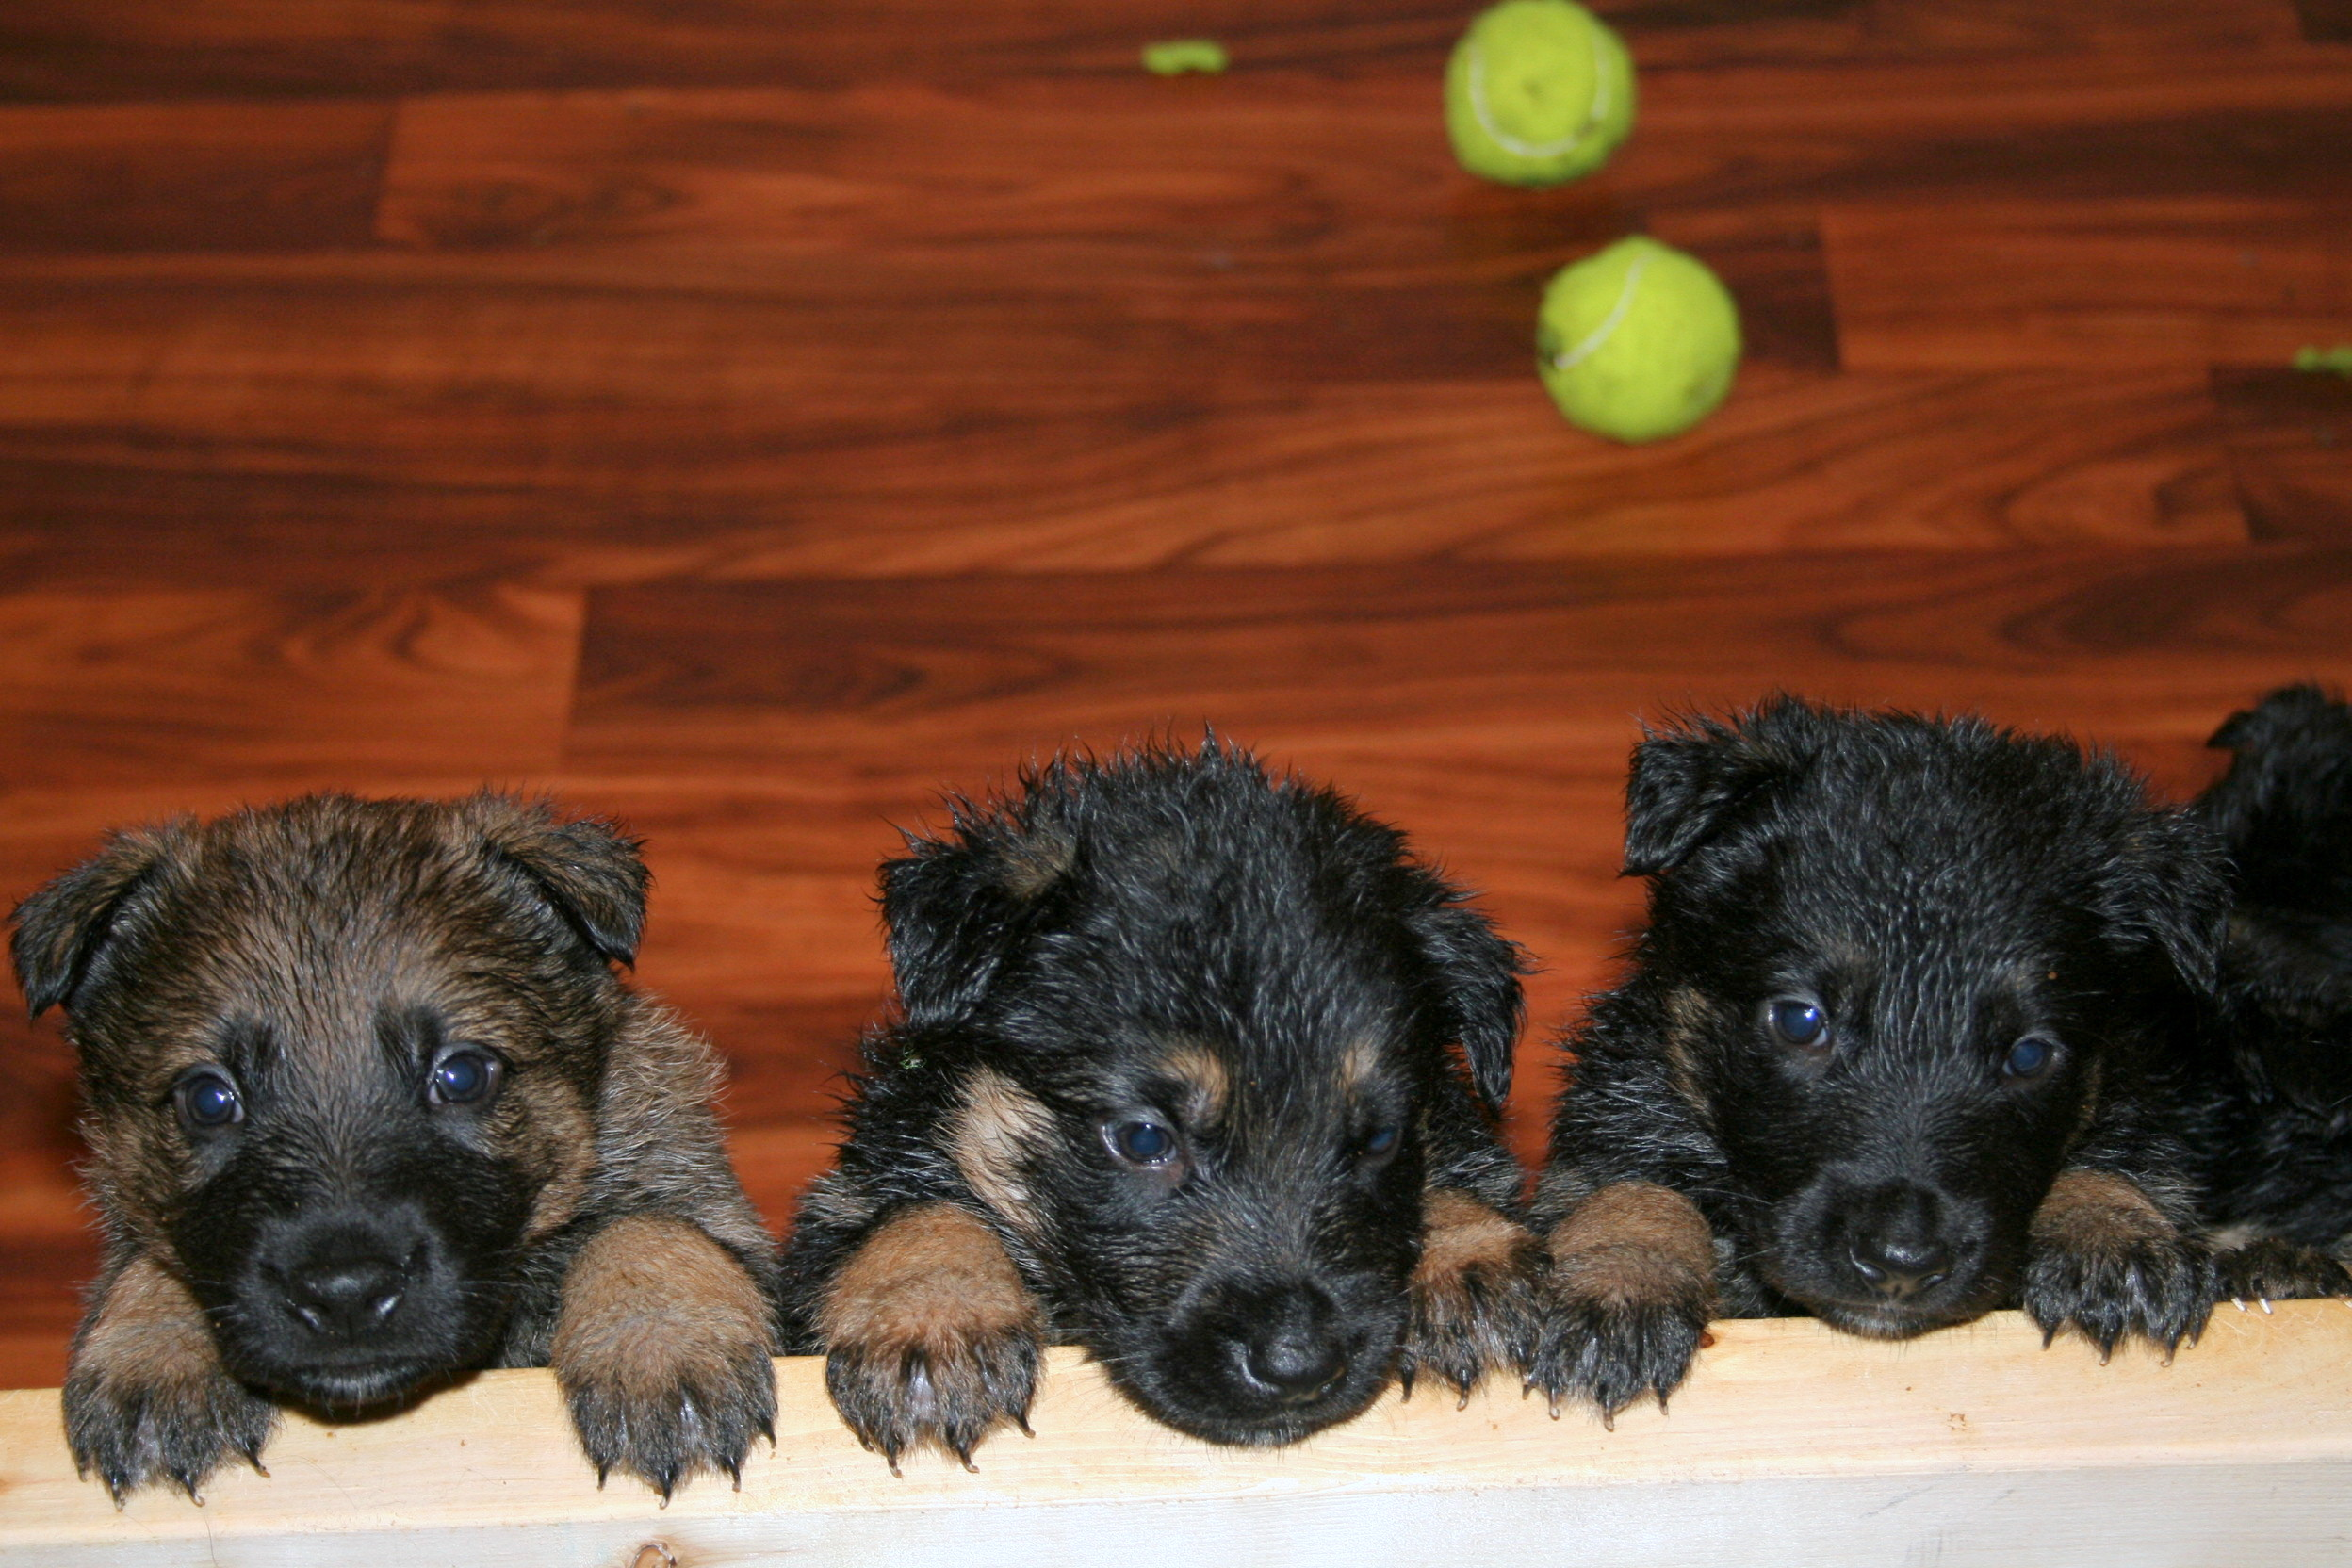 G-Litter Puppies from Drago and Jetta.